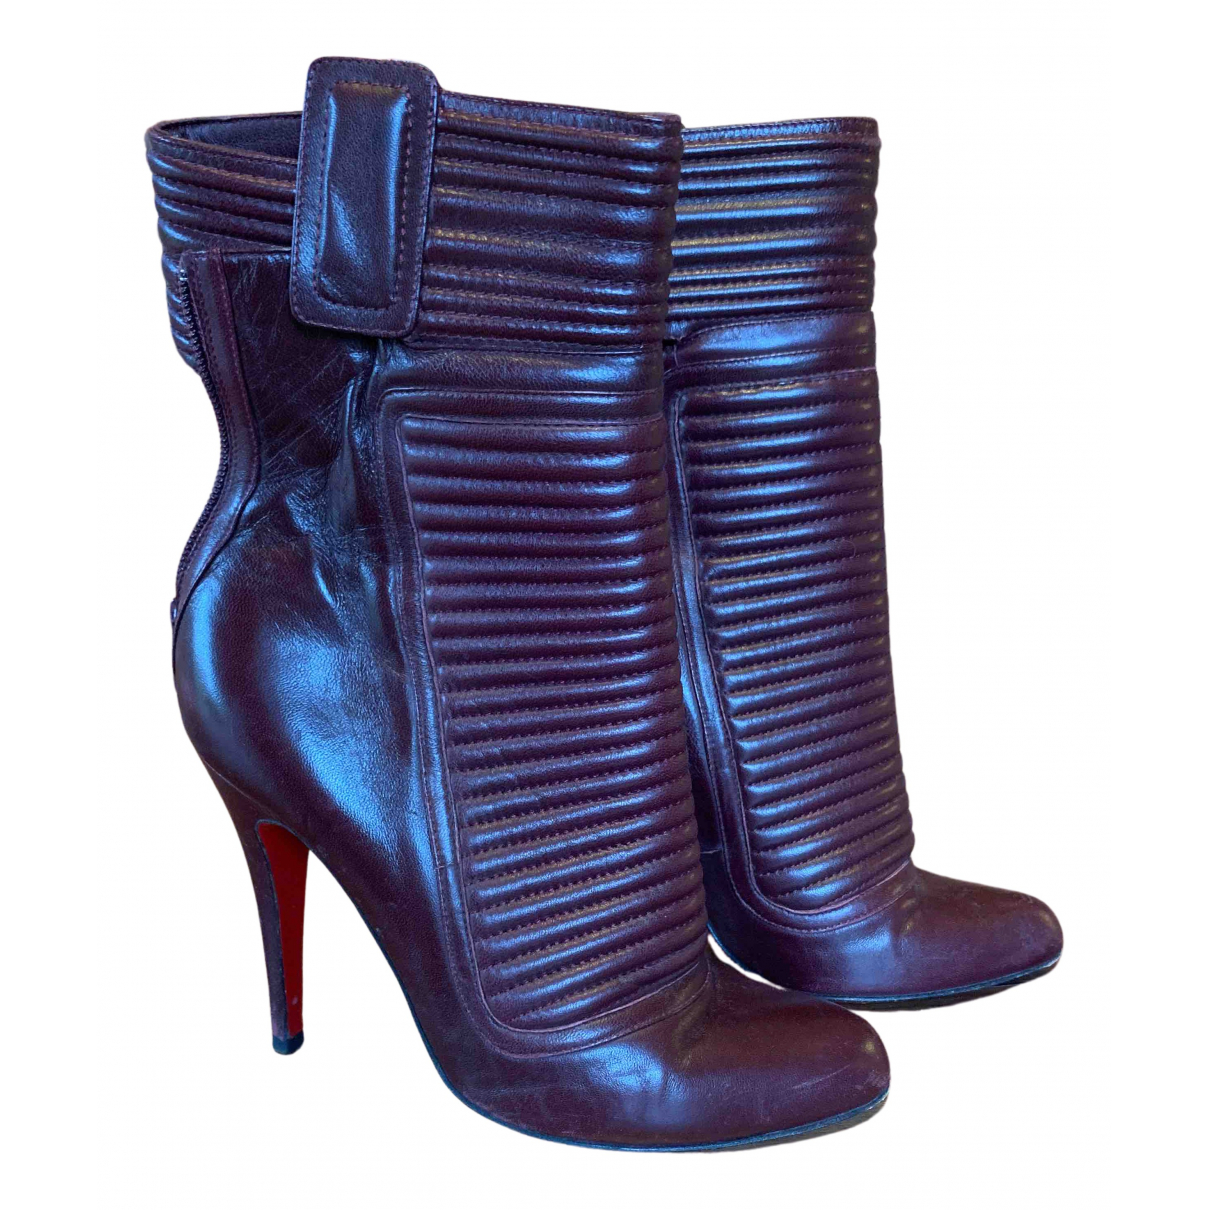 Christian Louboutin N Burgundy Leather Ankle boots for Women 38 EU